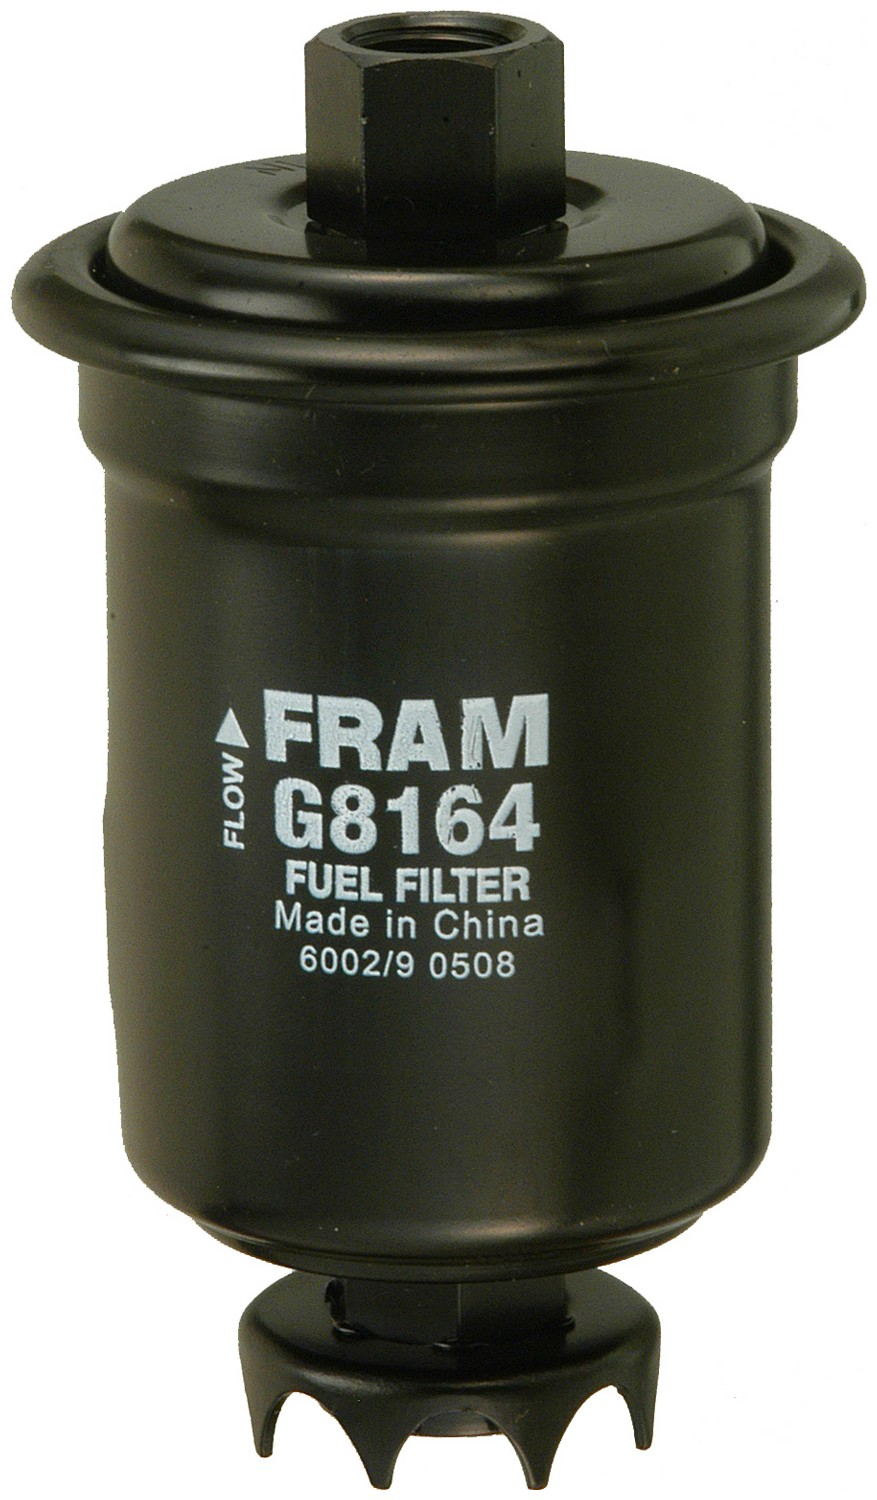 Fram G8164 Fuel Filter for Chrysler Sebring, Daihatsu Charade, Dodge Avenger